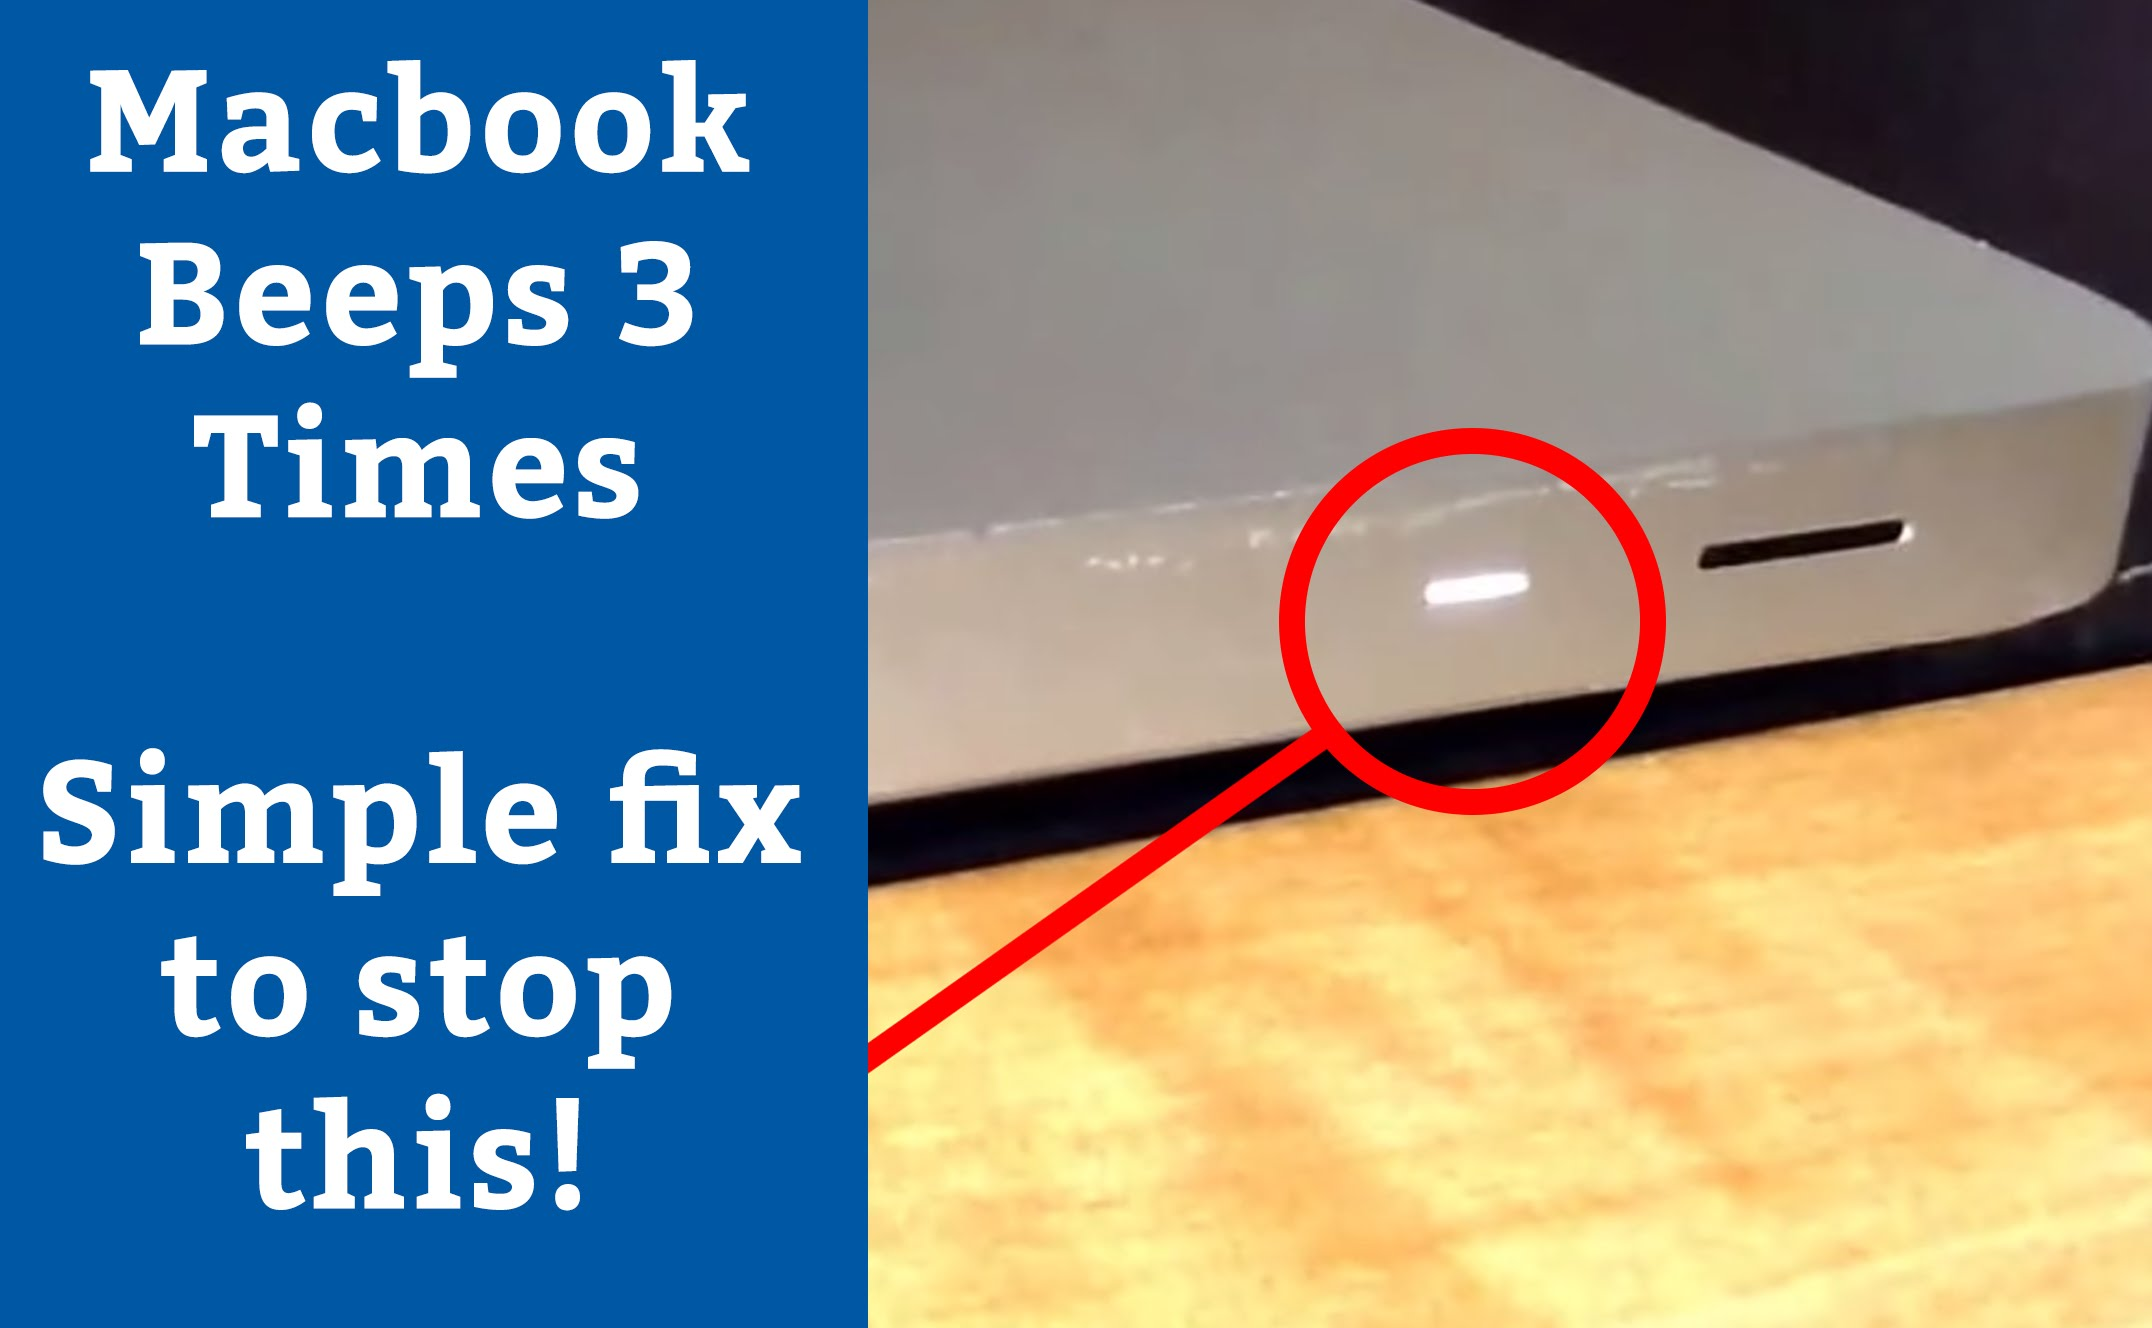 MacBook beeps three times won't turn on. Fix for 3 beeps. - YouTube